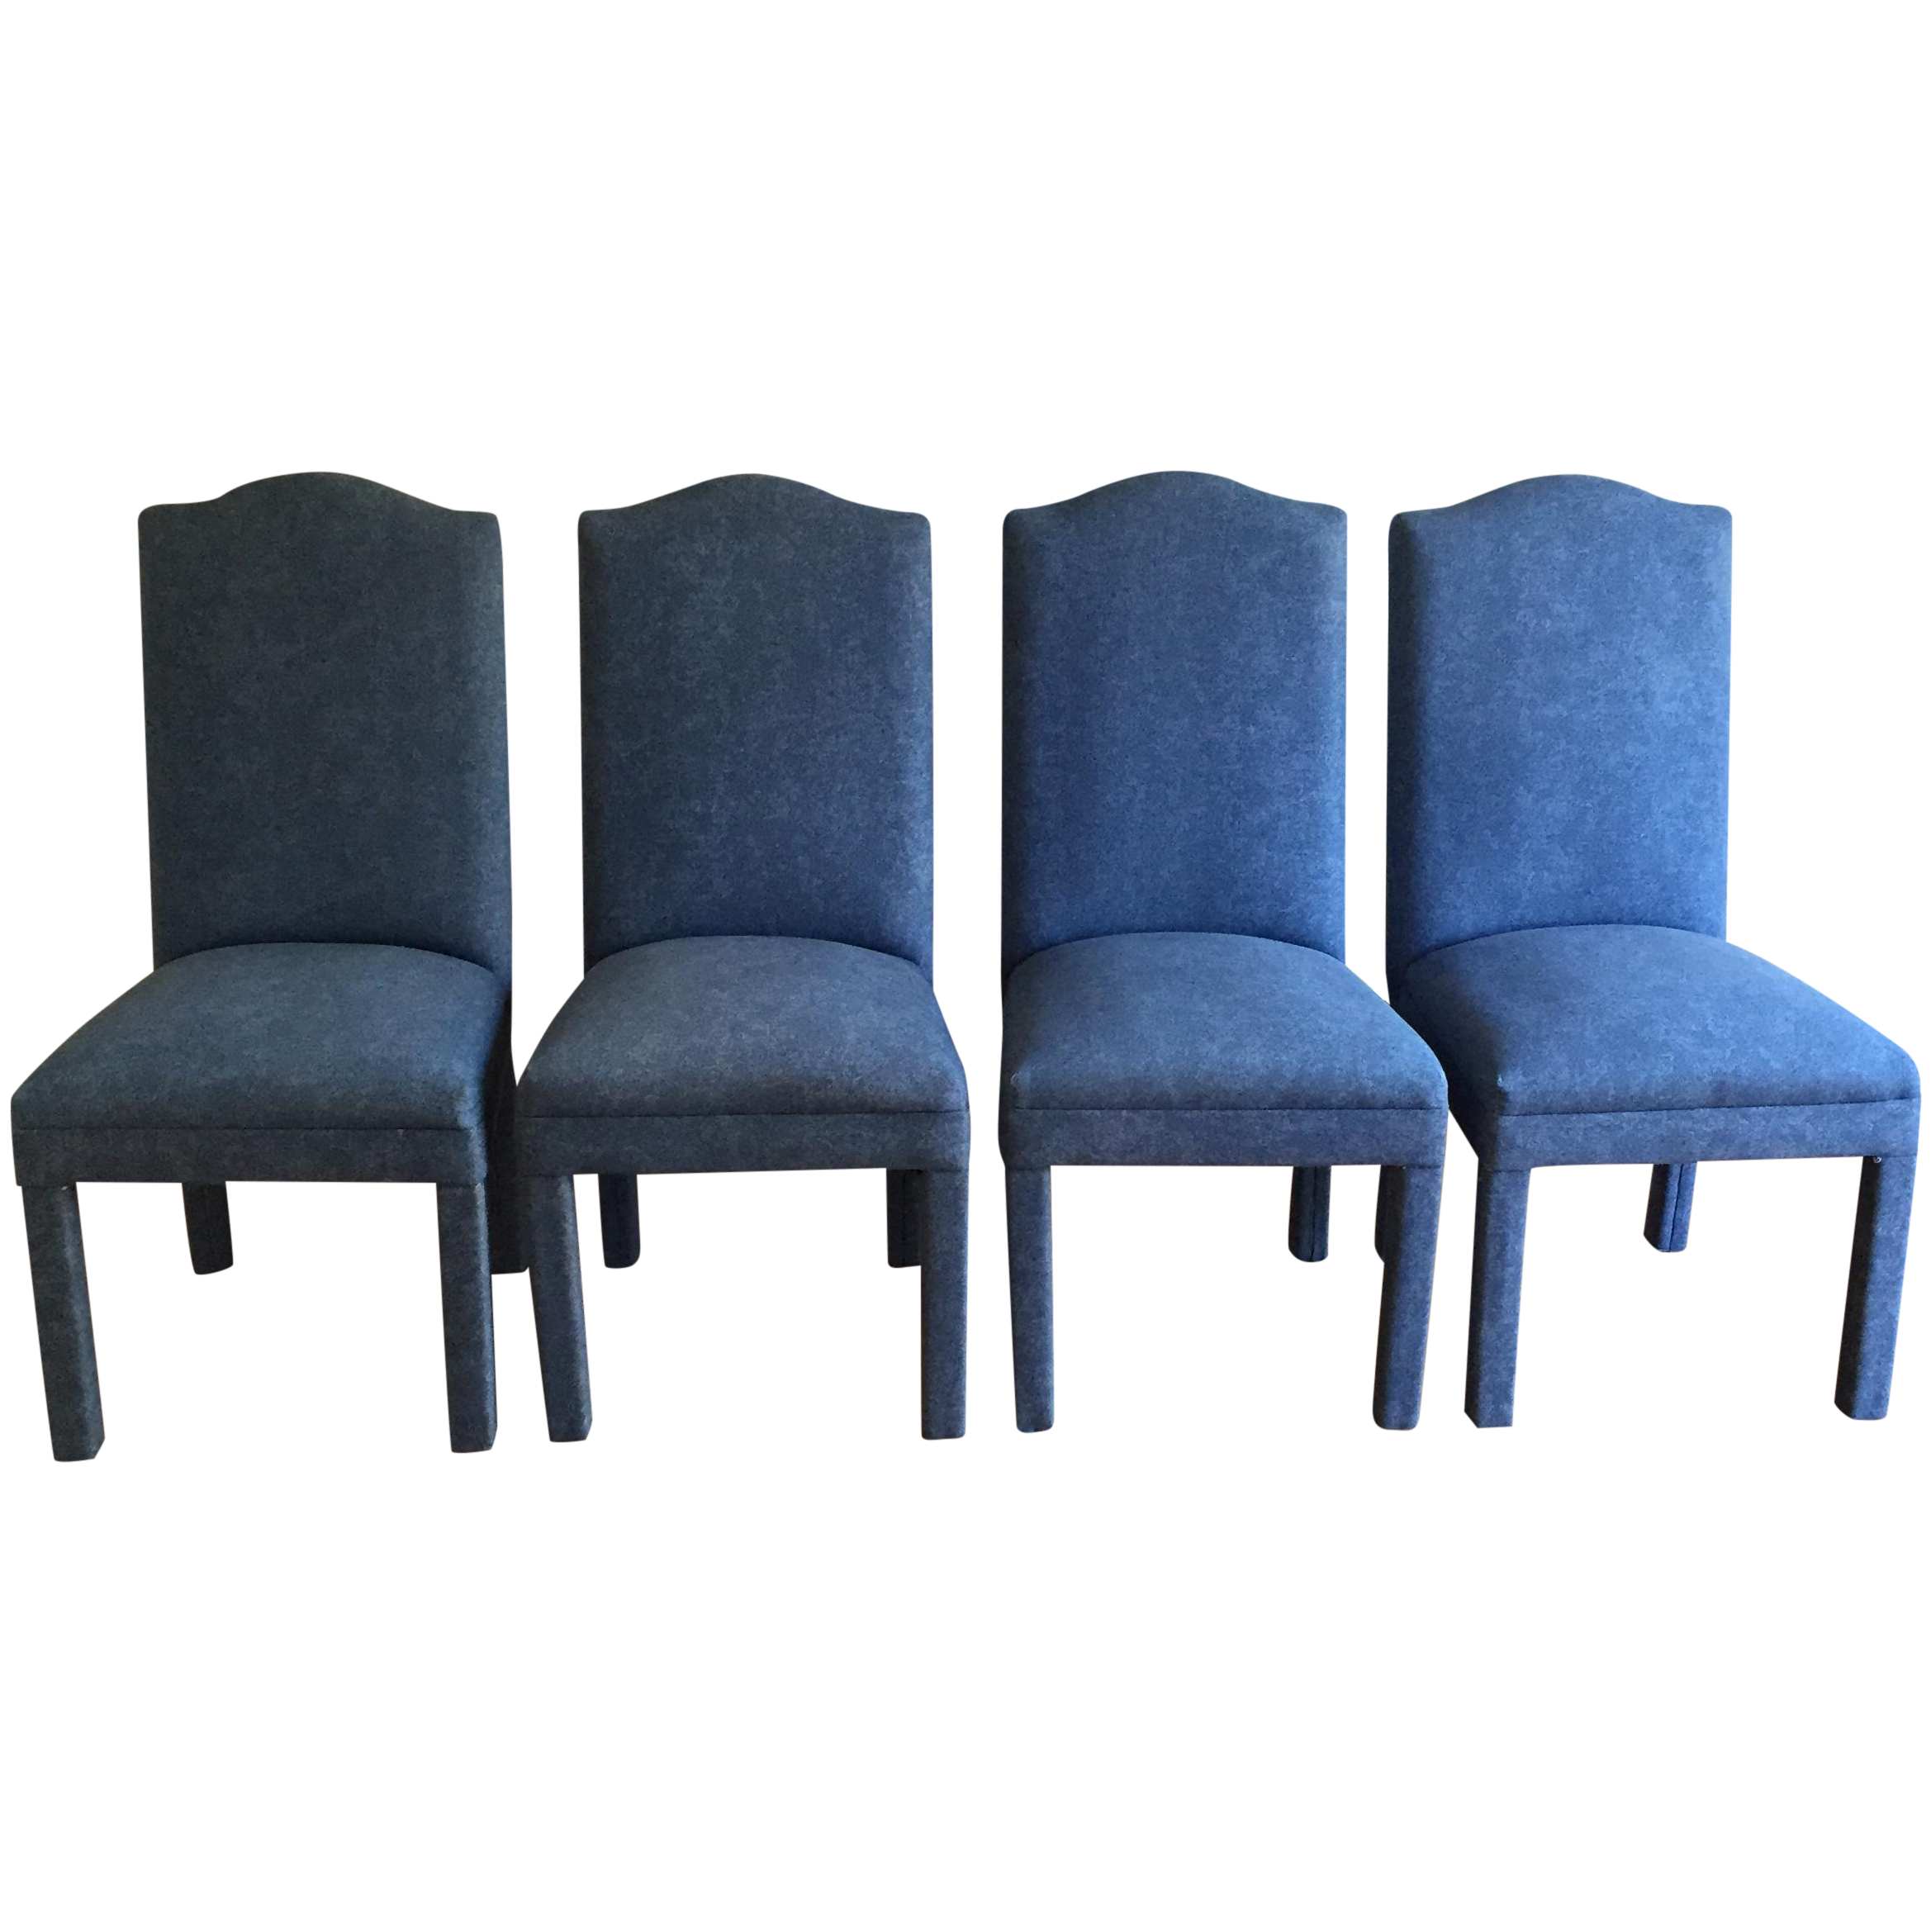 Denim style upholstered parsons chairs set of 4 chairish for What is a parsons chair style